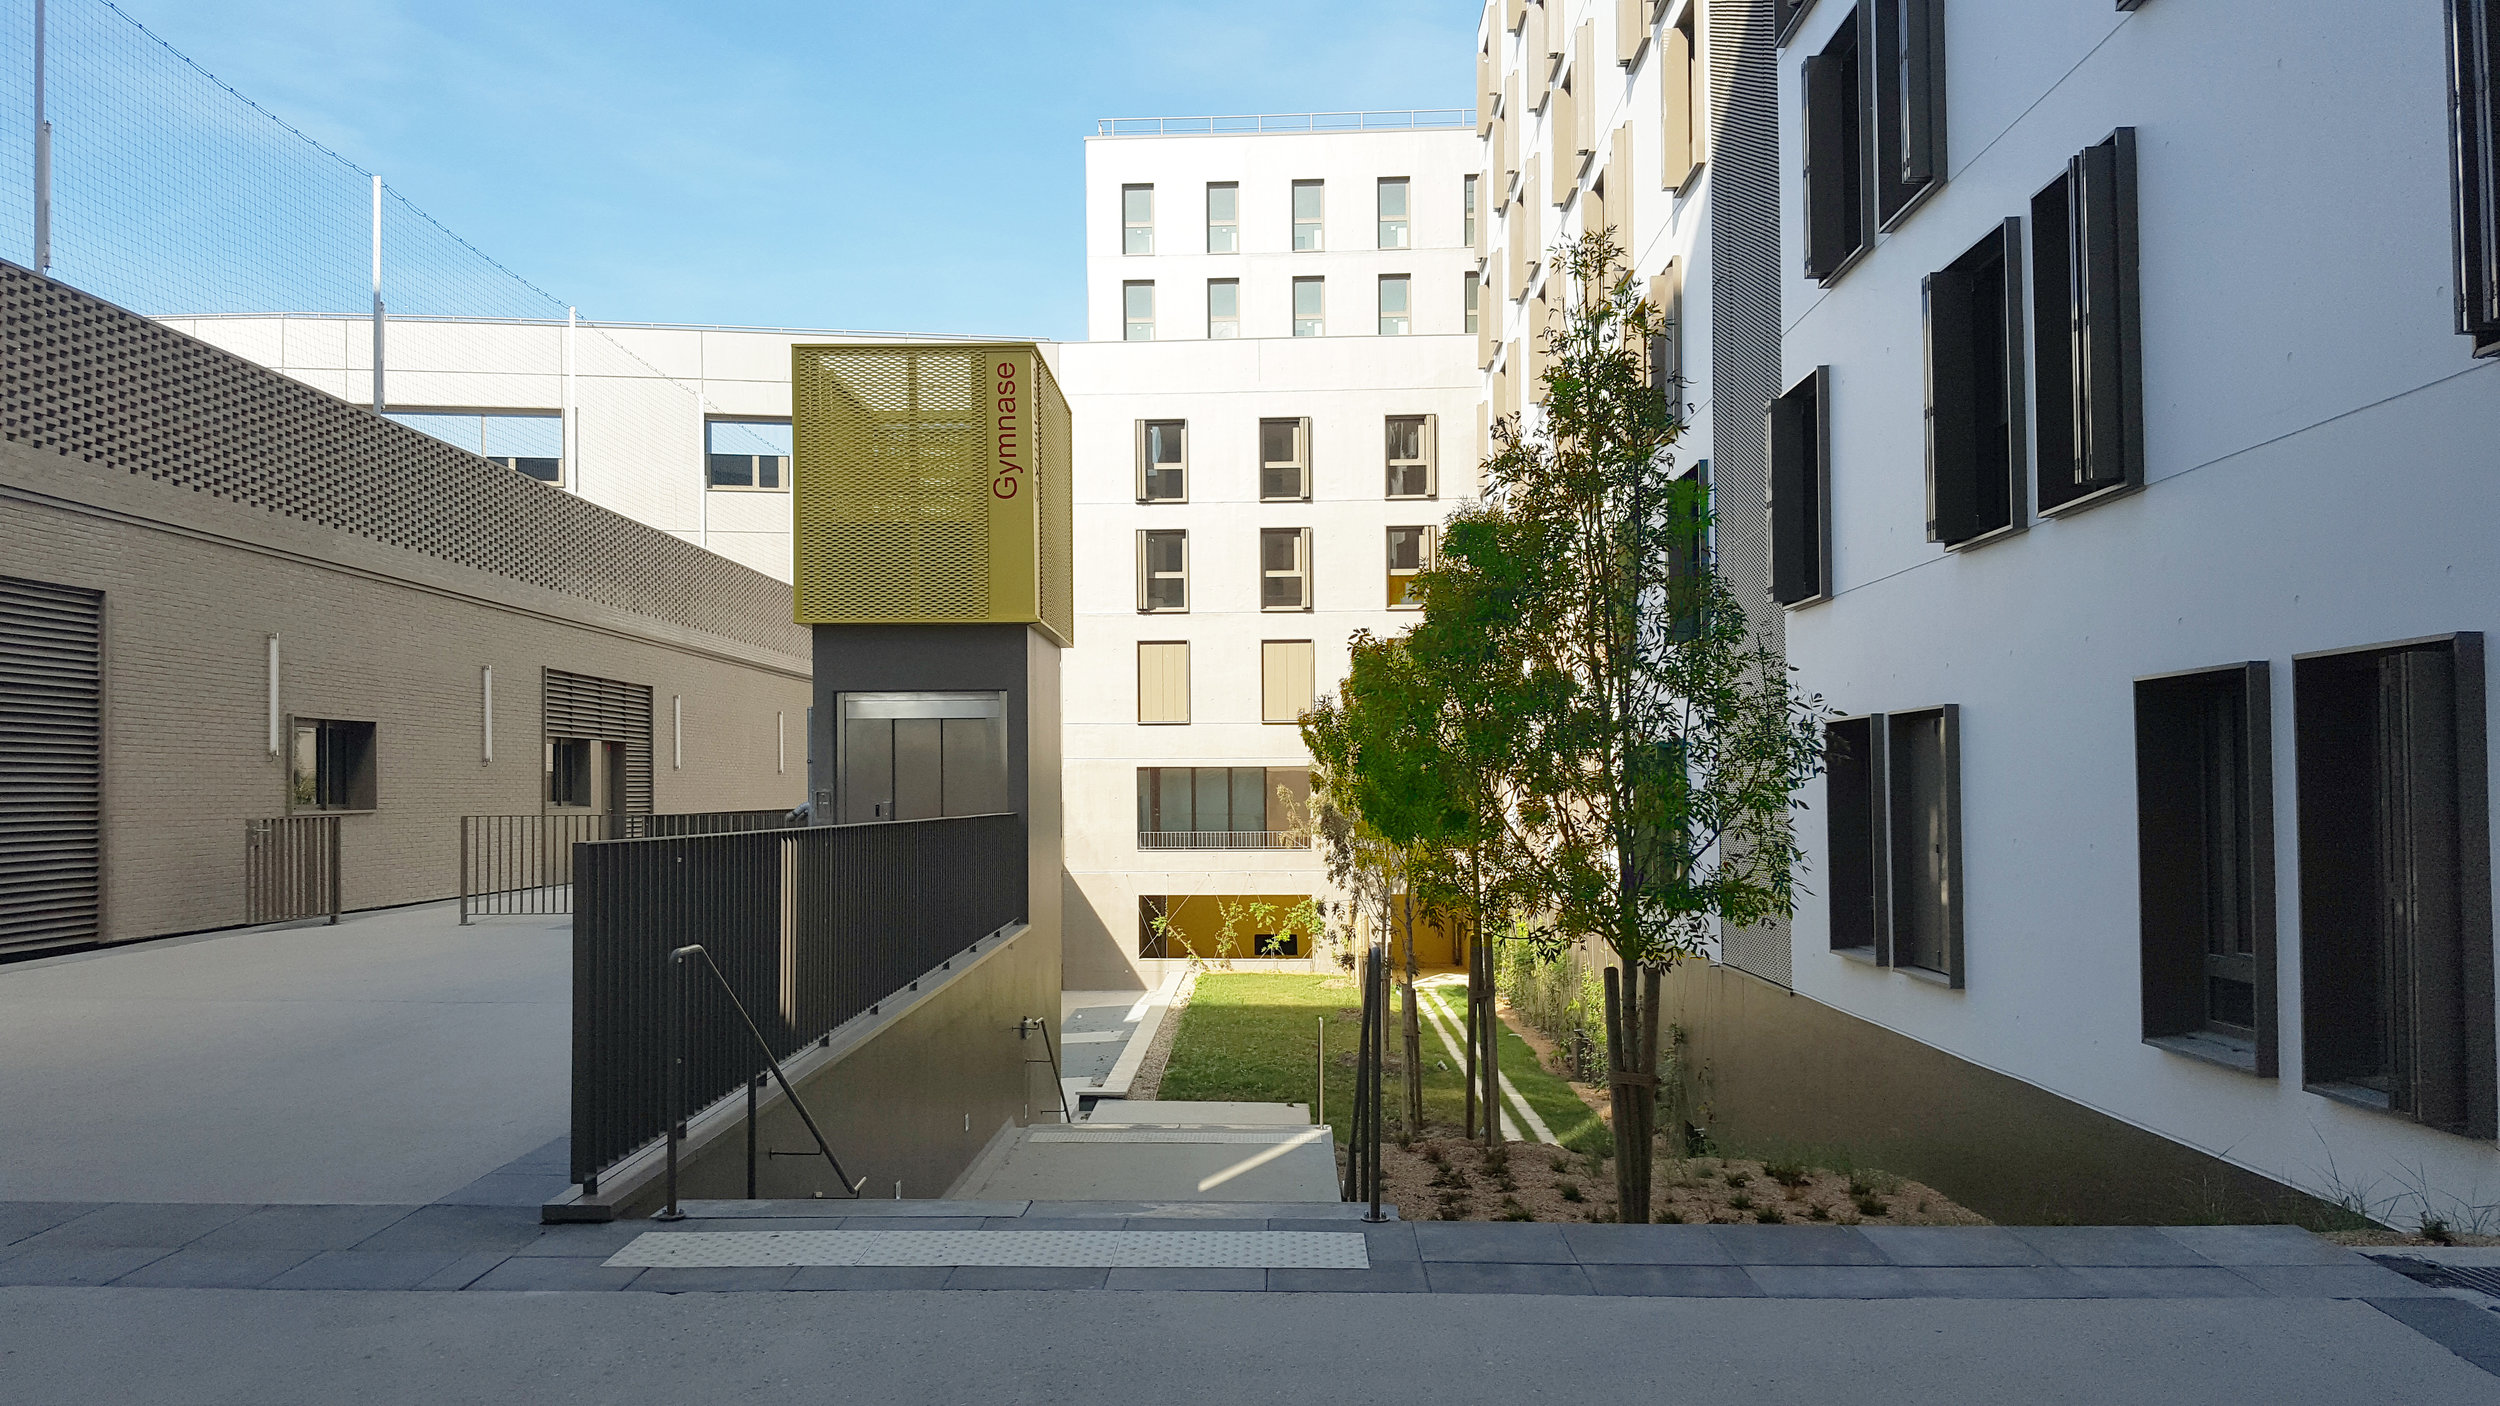 montjoie_school_group_saint_denis_public_outdoor_design_christophe_gautrand_landscape_3.jpg